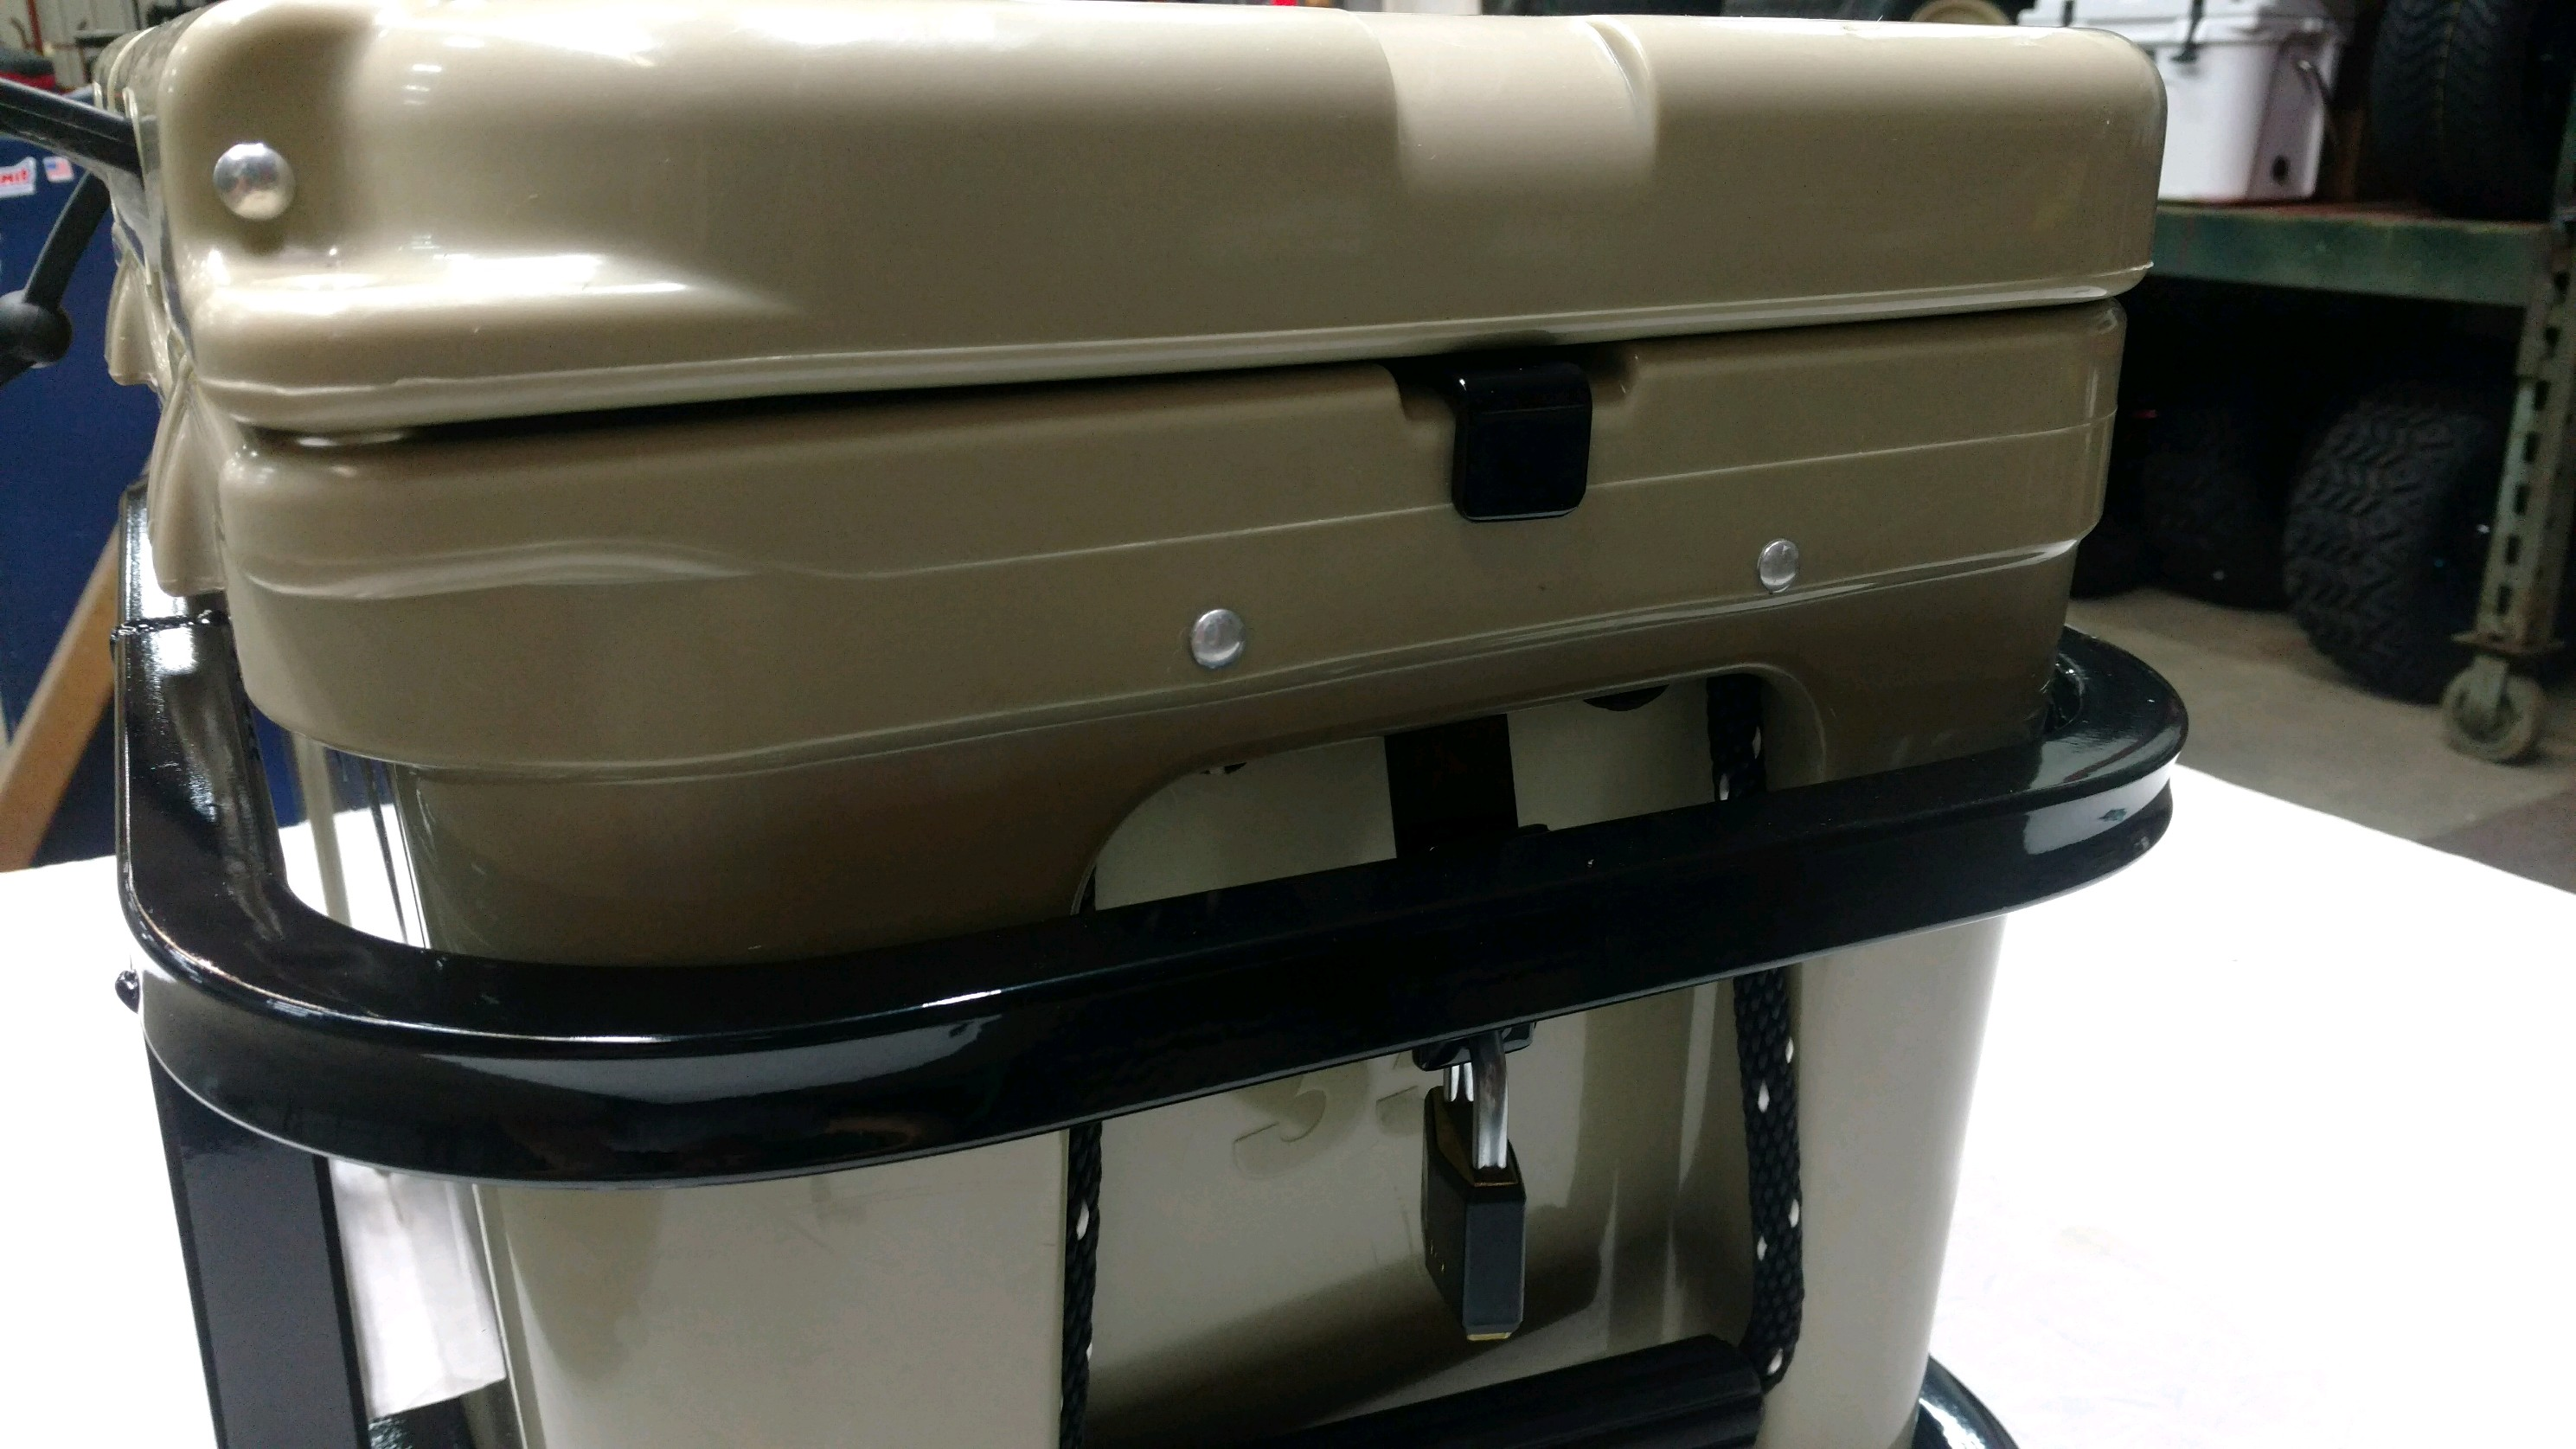 Yeti 35 Cooler Hitch Carrier with lock